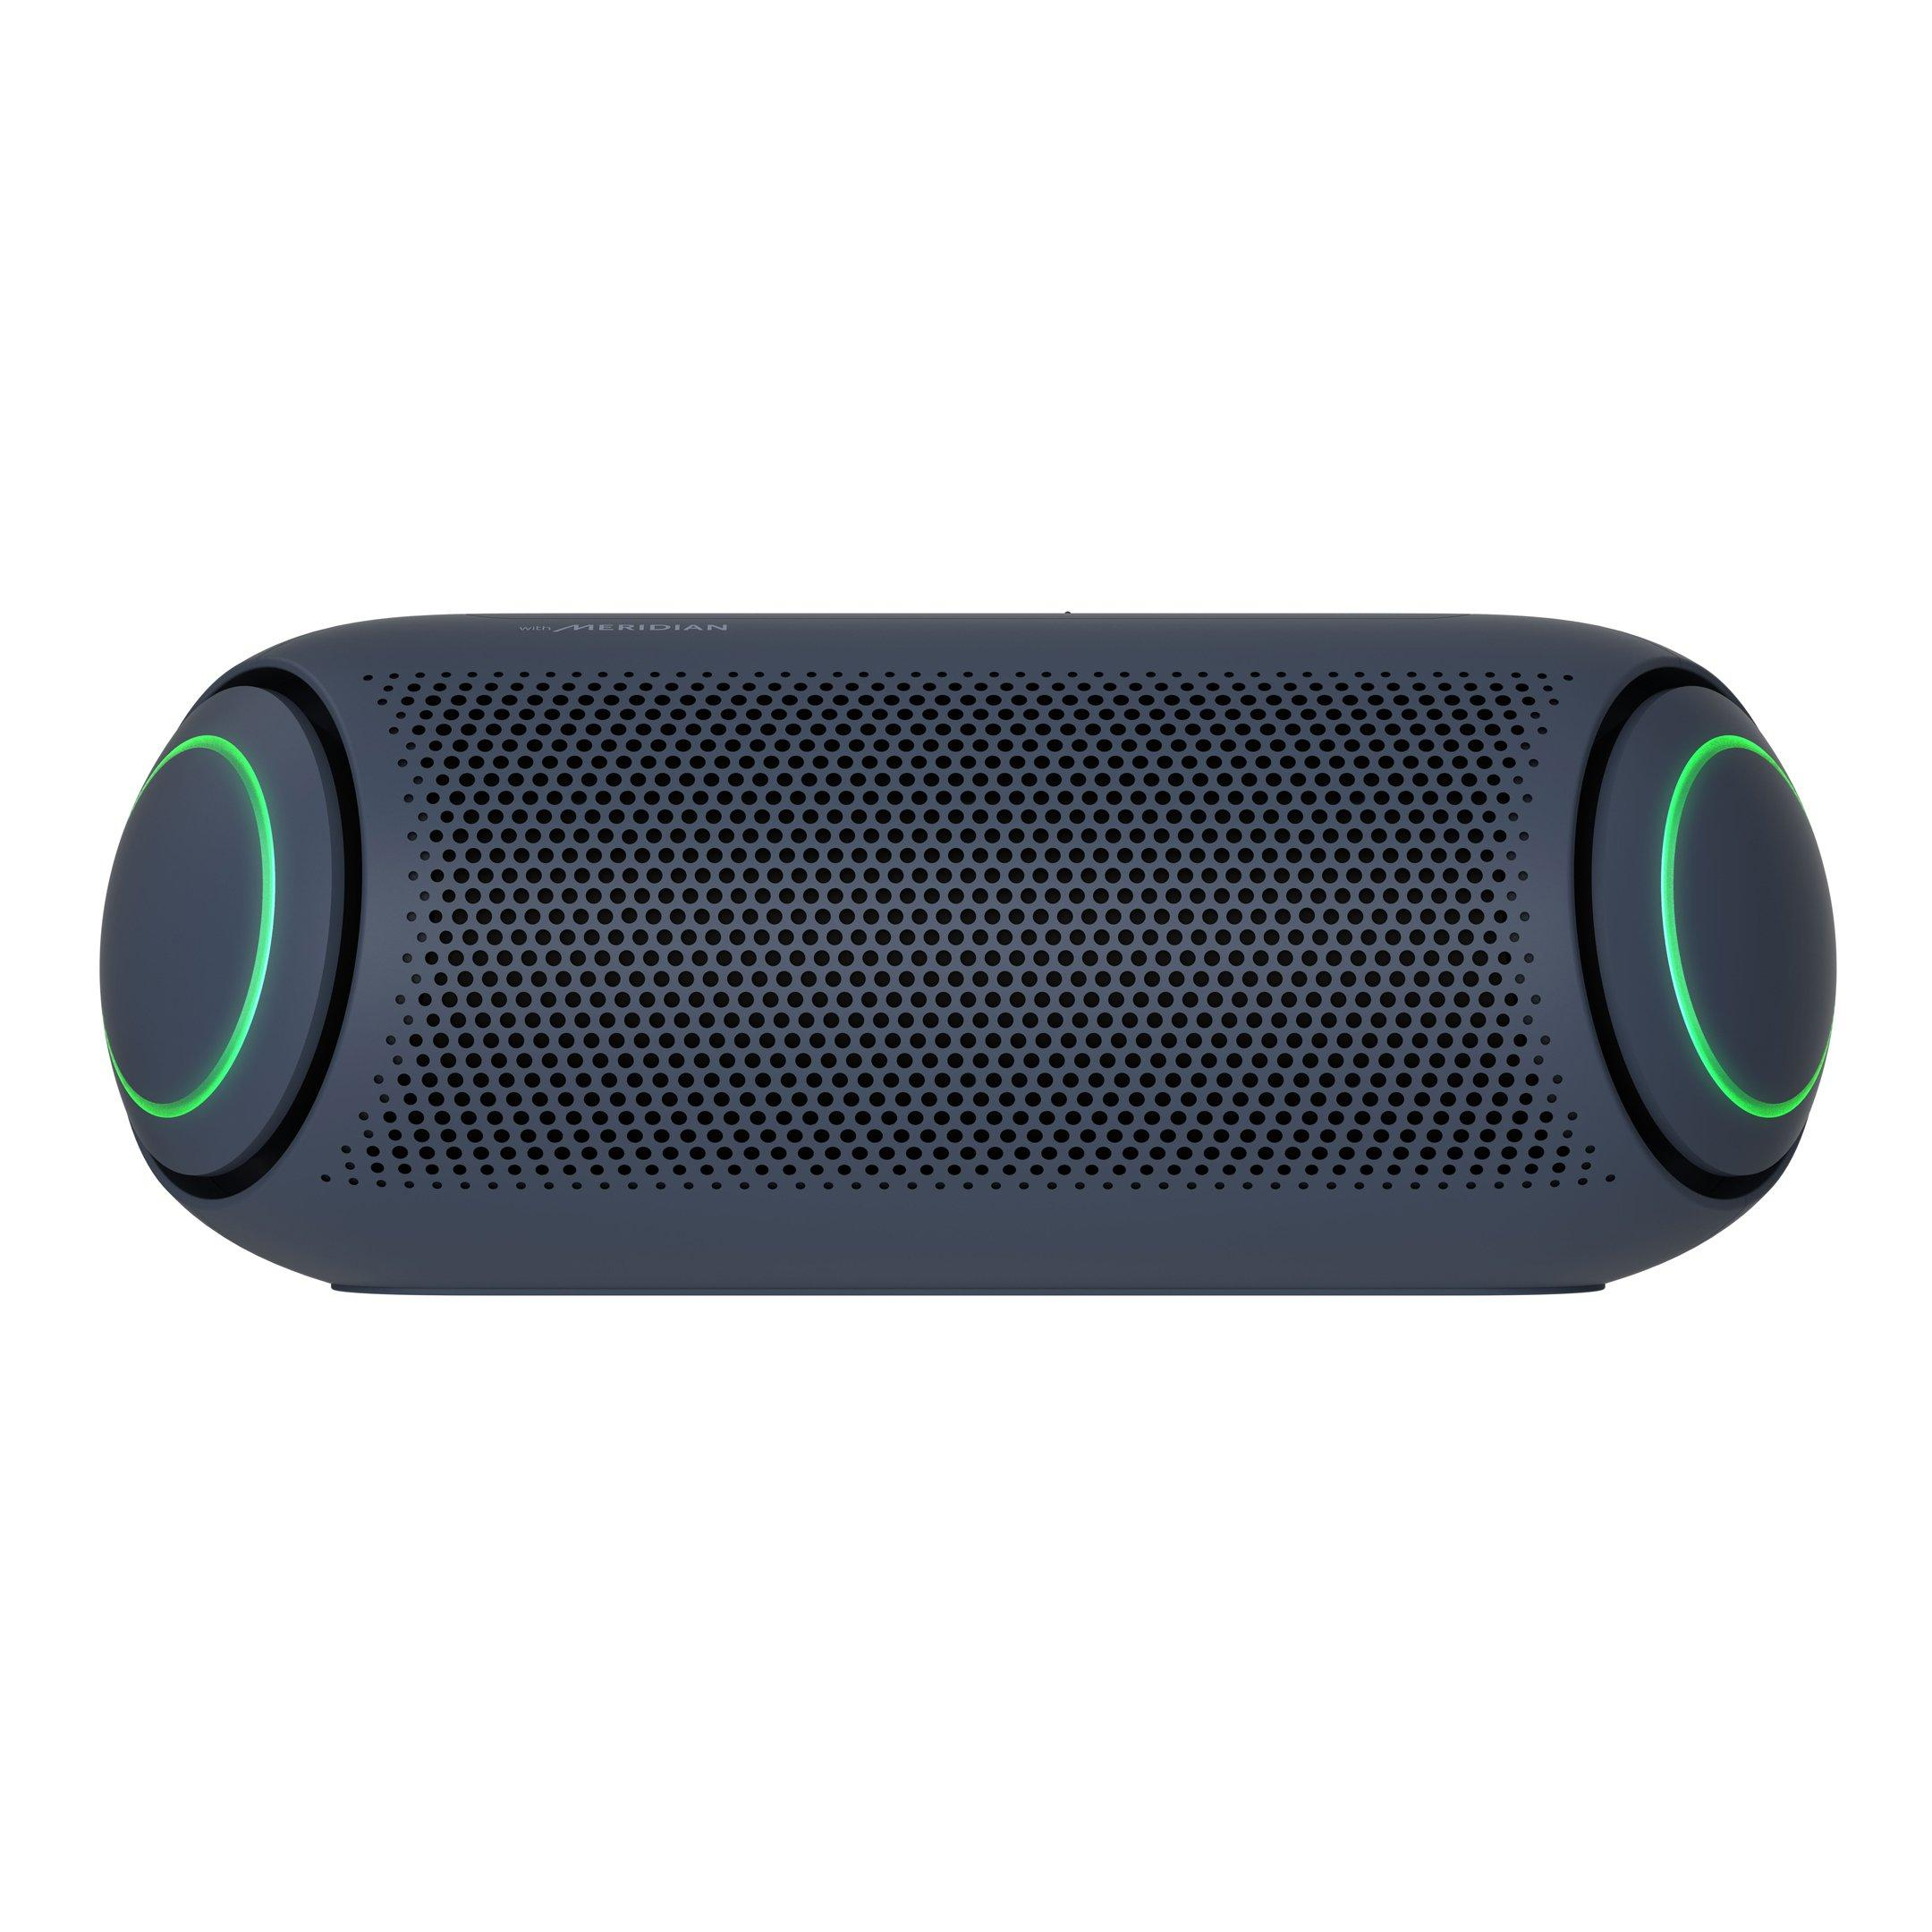 LG Xboom Go PL9 Portable Bluetooth Speaker with Meridian Audio Technology,  Black